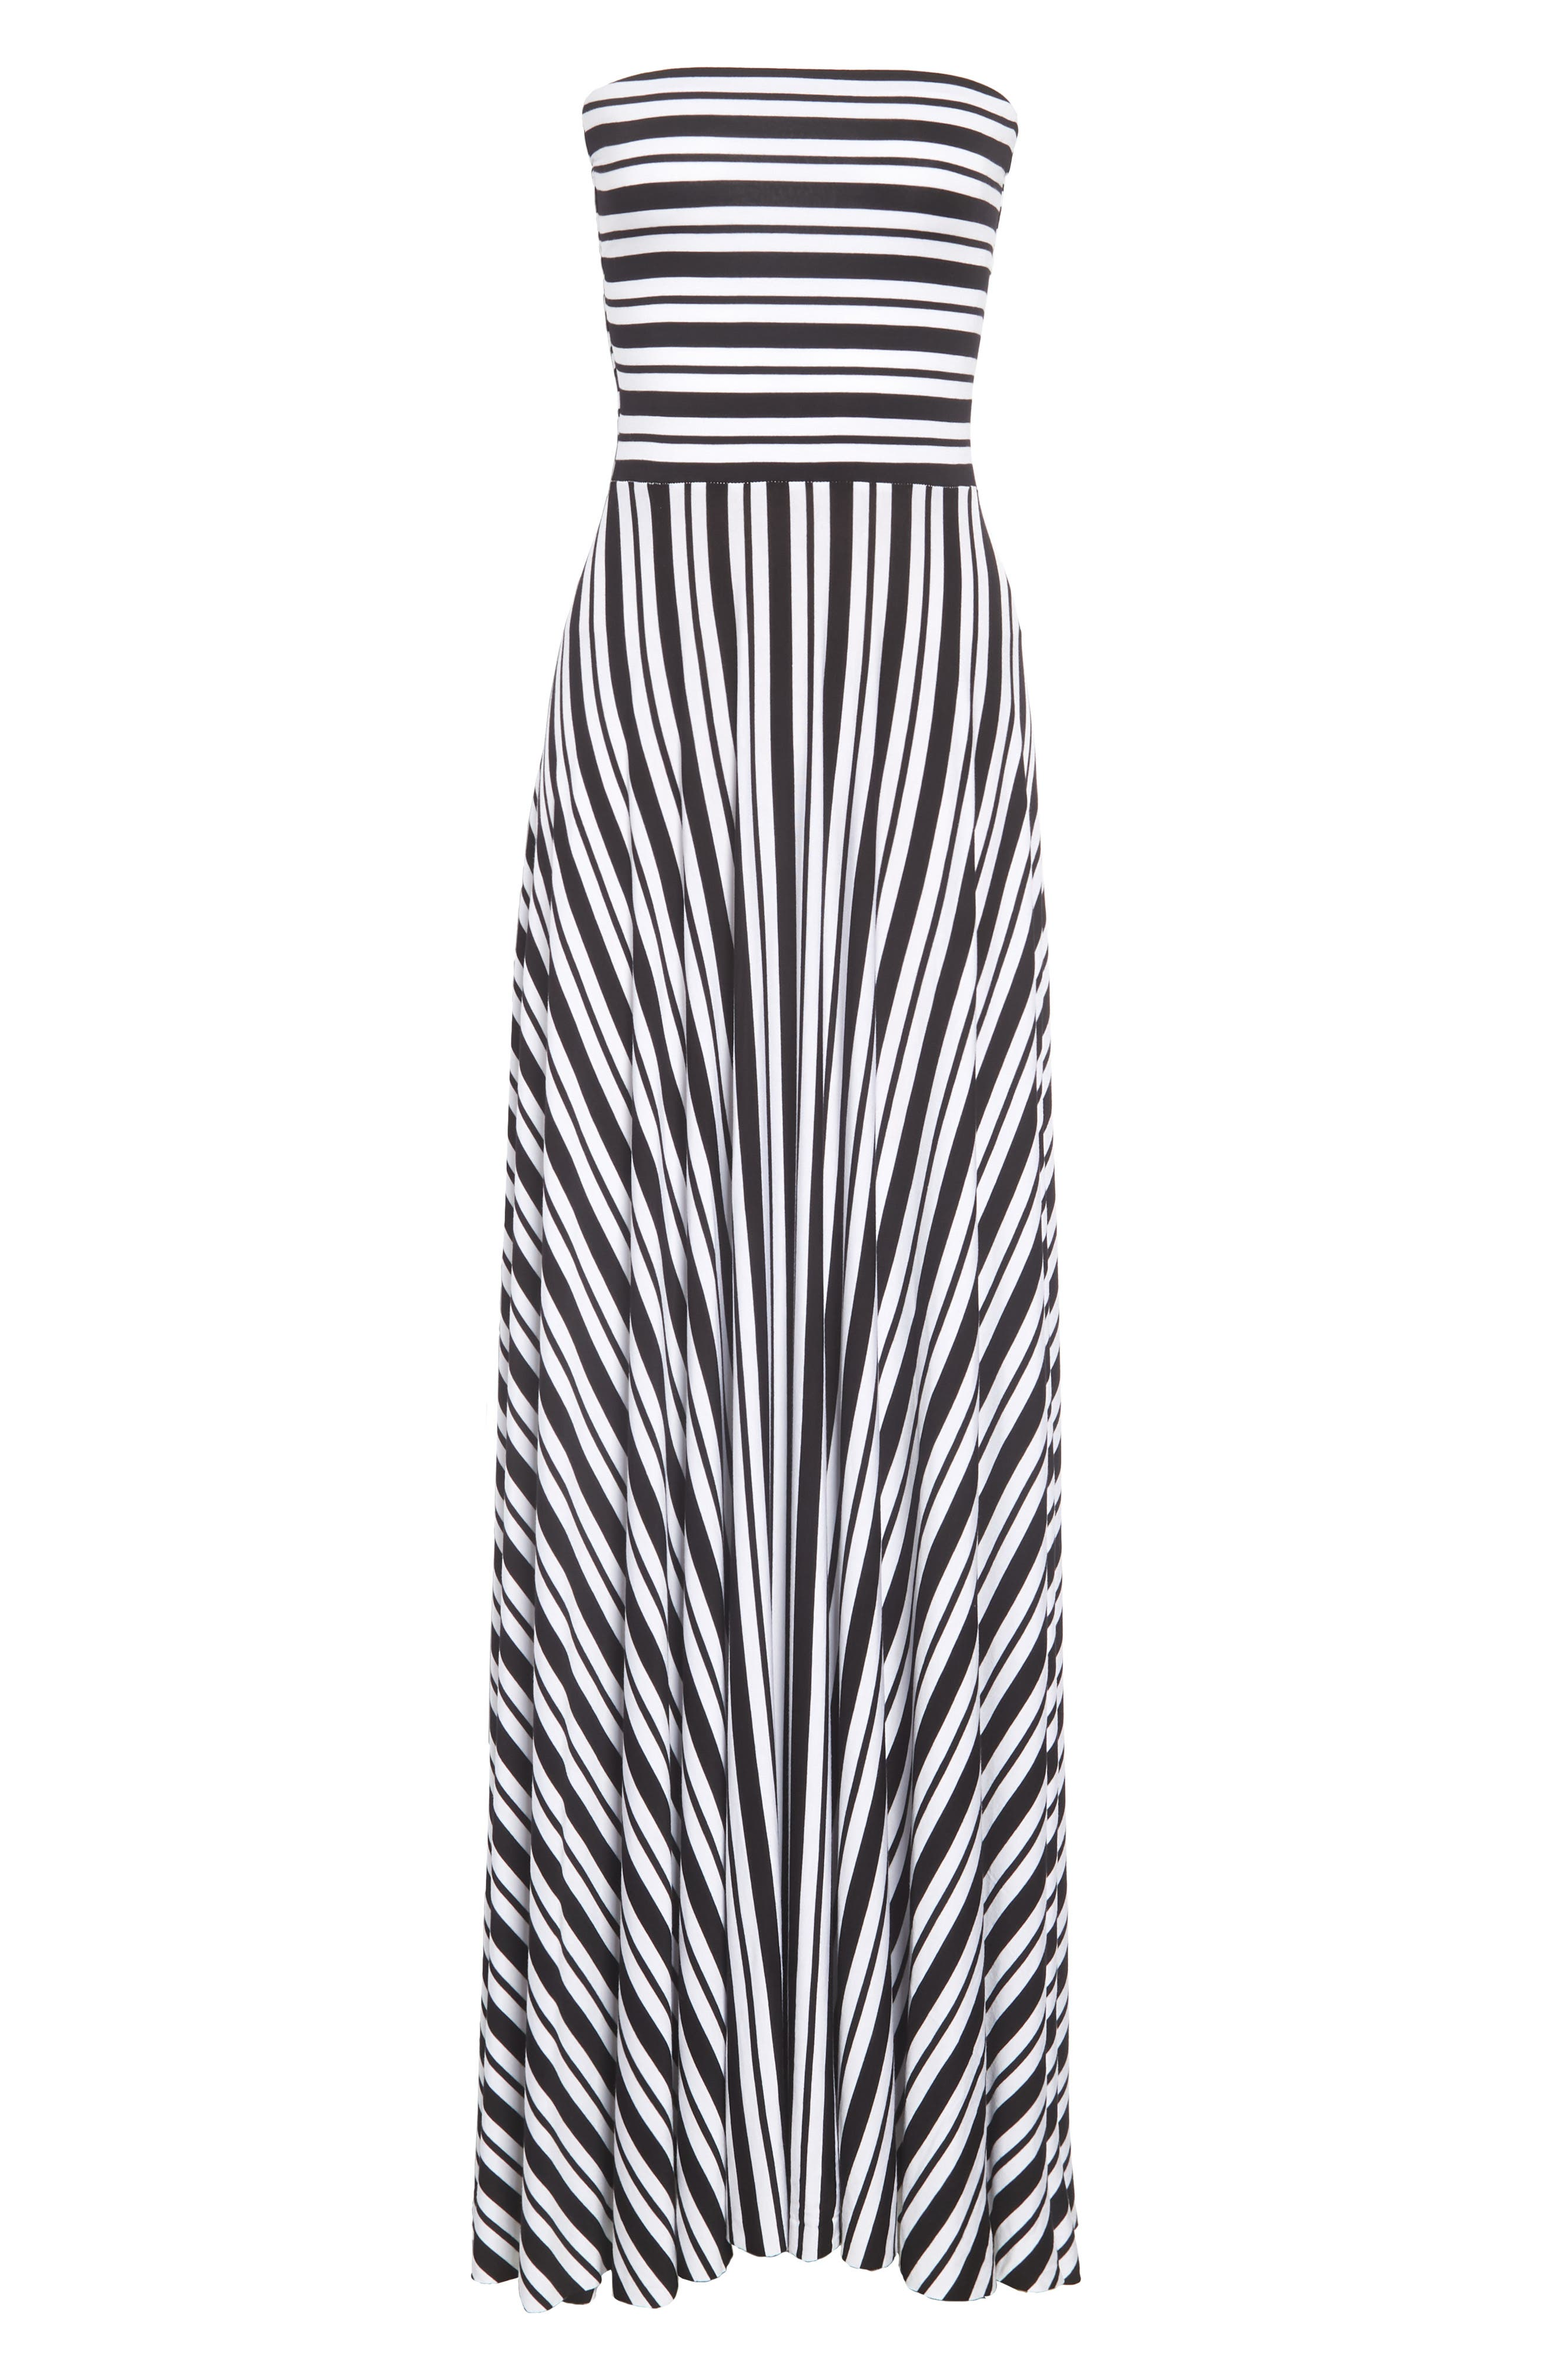 FELICITY & COCO, Stripe Strapless Maxi Dress, Alternate thumbnail 2, color, 001